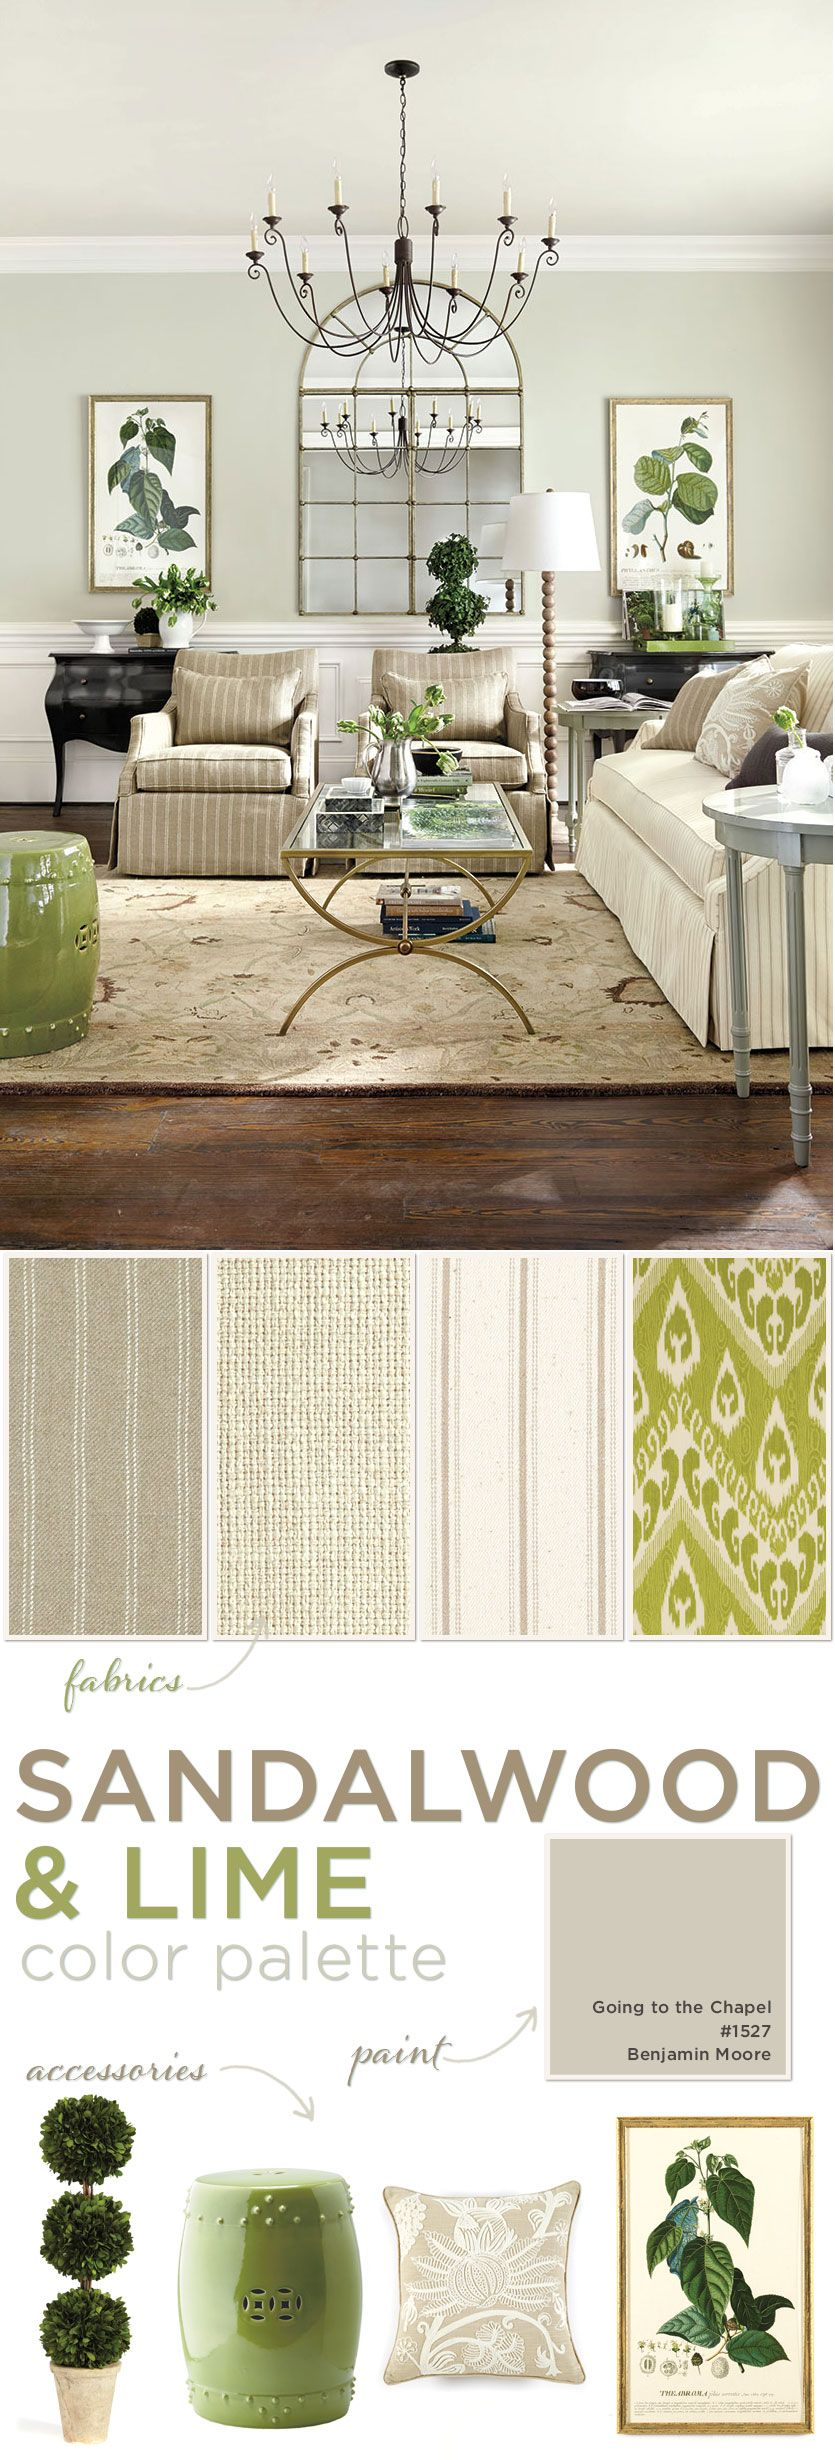 Inspired Color Palettes for Spring 2014 | Green accents, Neutral and ...